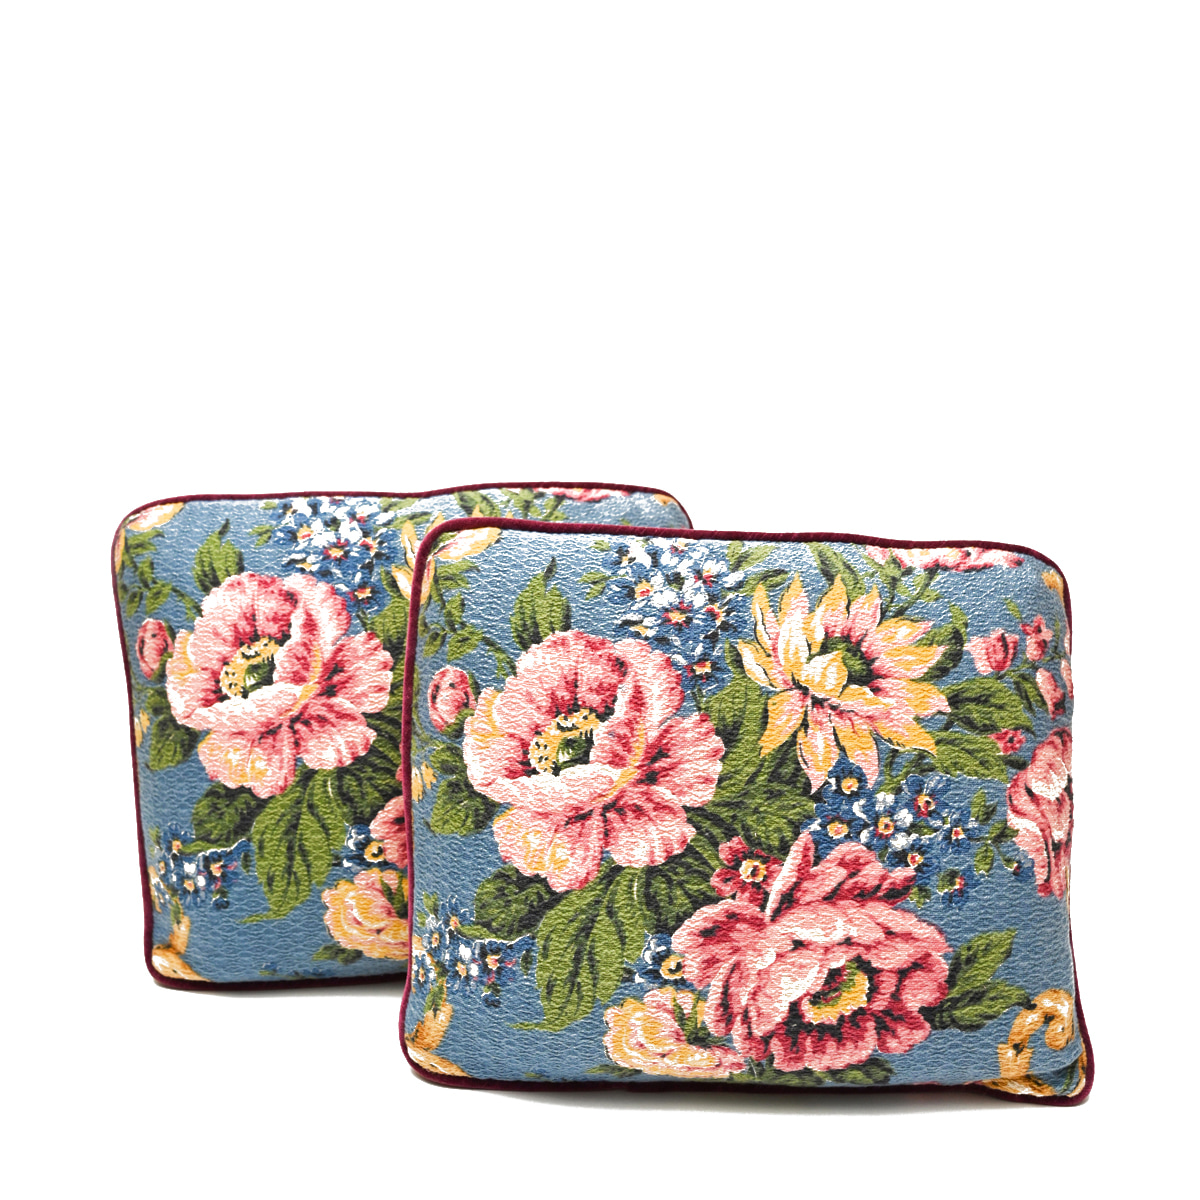 oblong pillows Pair Floral Motif on Periwinkle